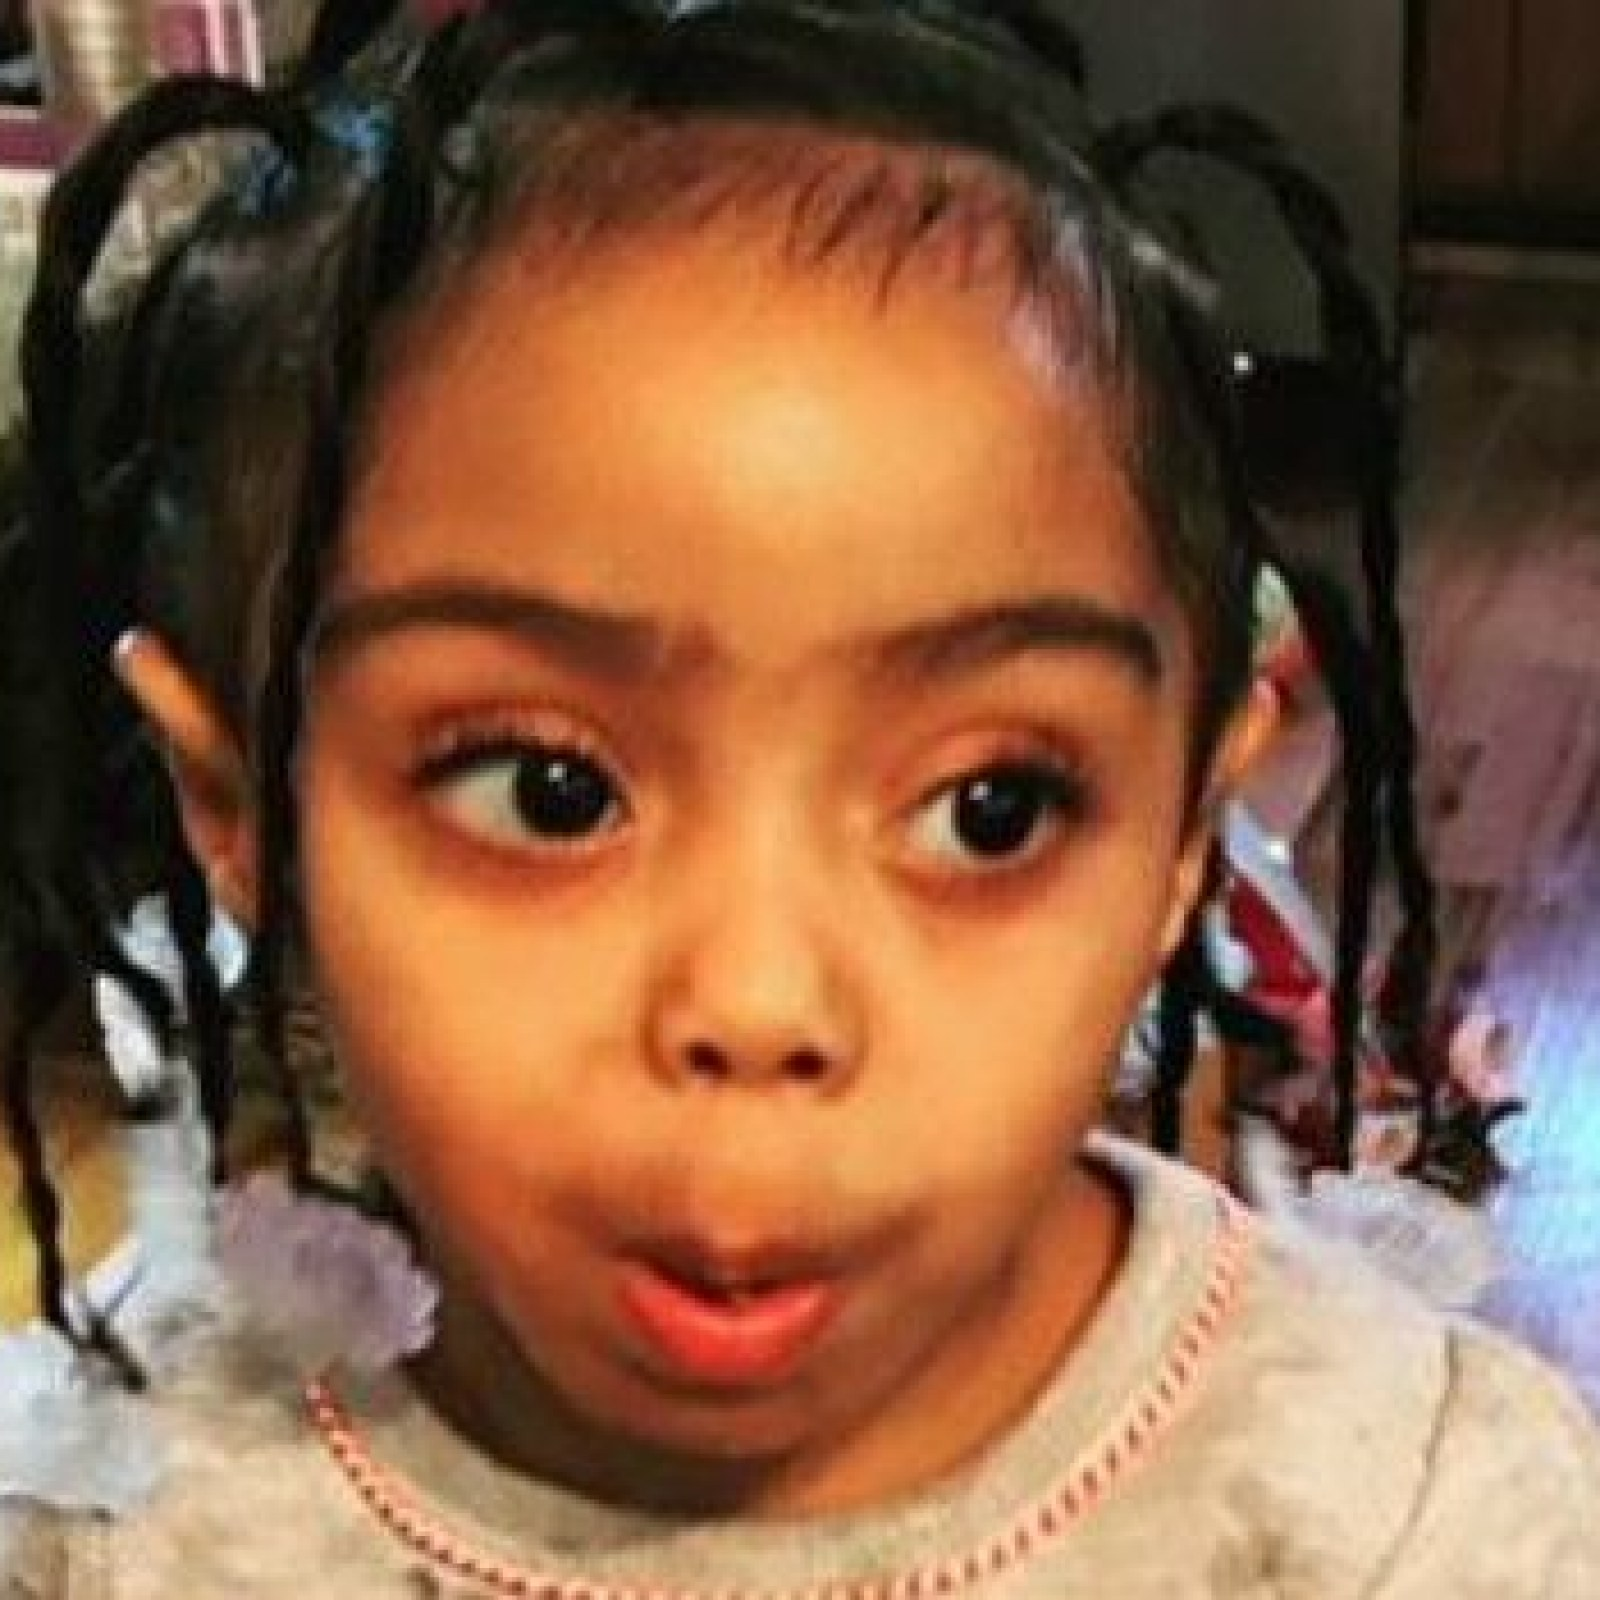 Milwaukee AMBER Alert: 3-Year-Old Girl Missing, Suspects Armed With